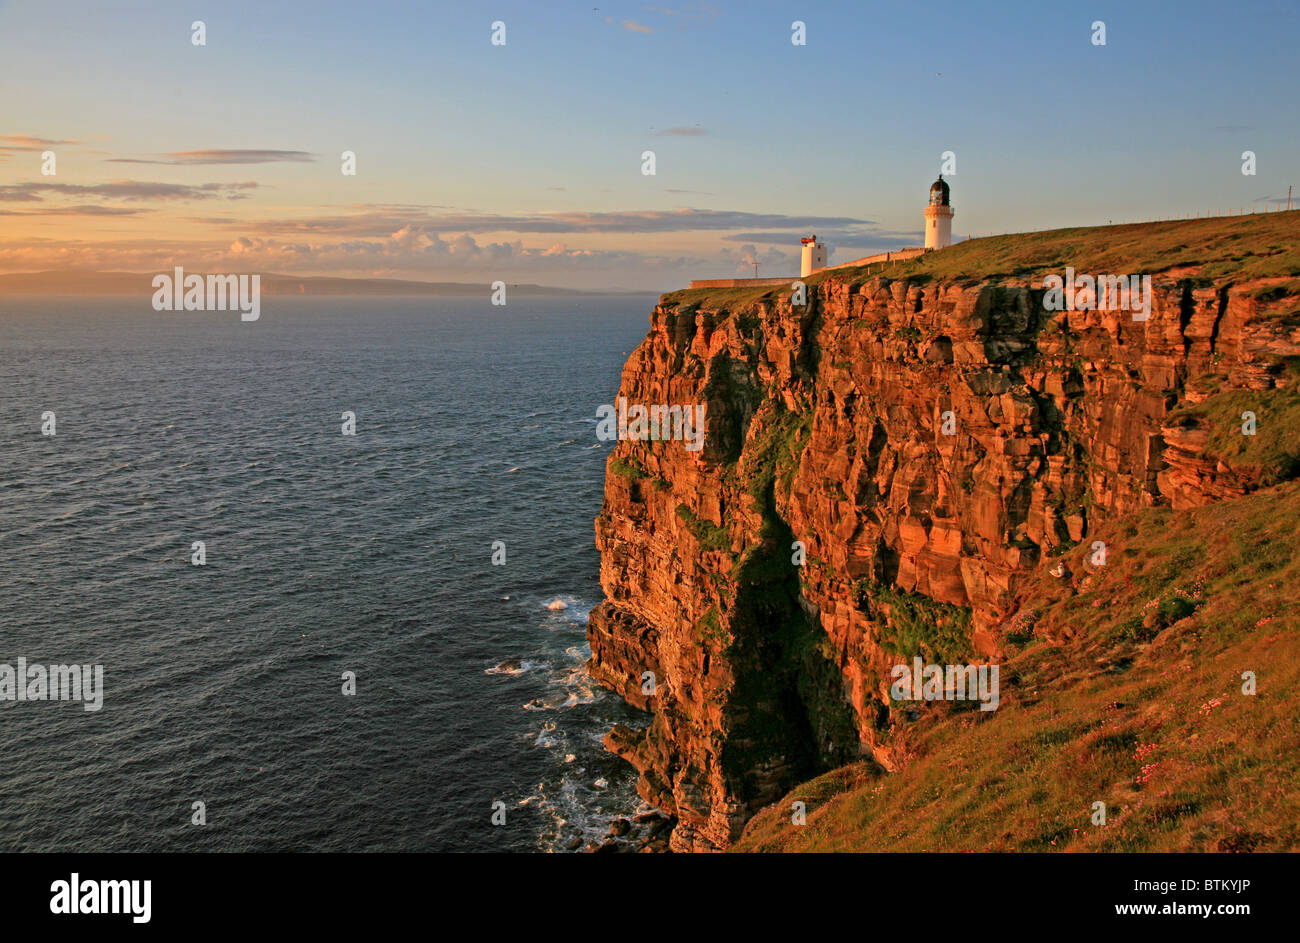 Evening light on the cliffs looking over the Pentland Firth to Orkney and the Island of Hoy - Stock Image